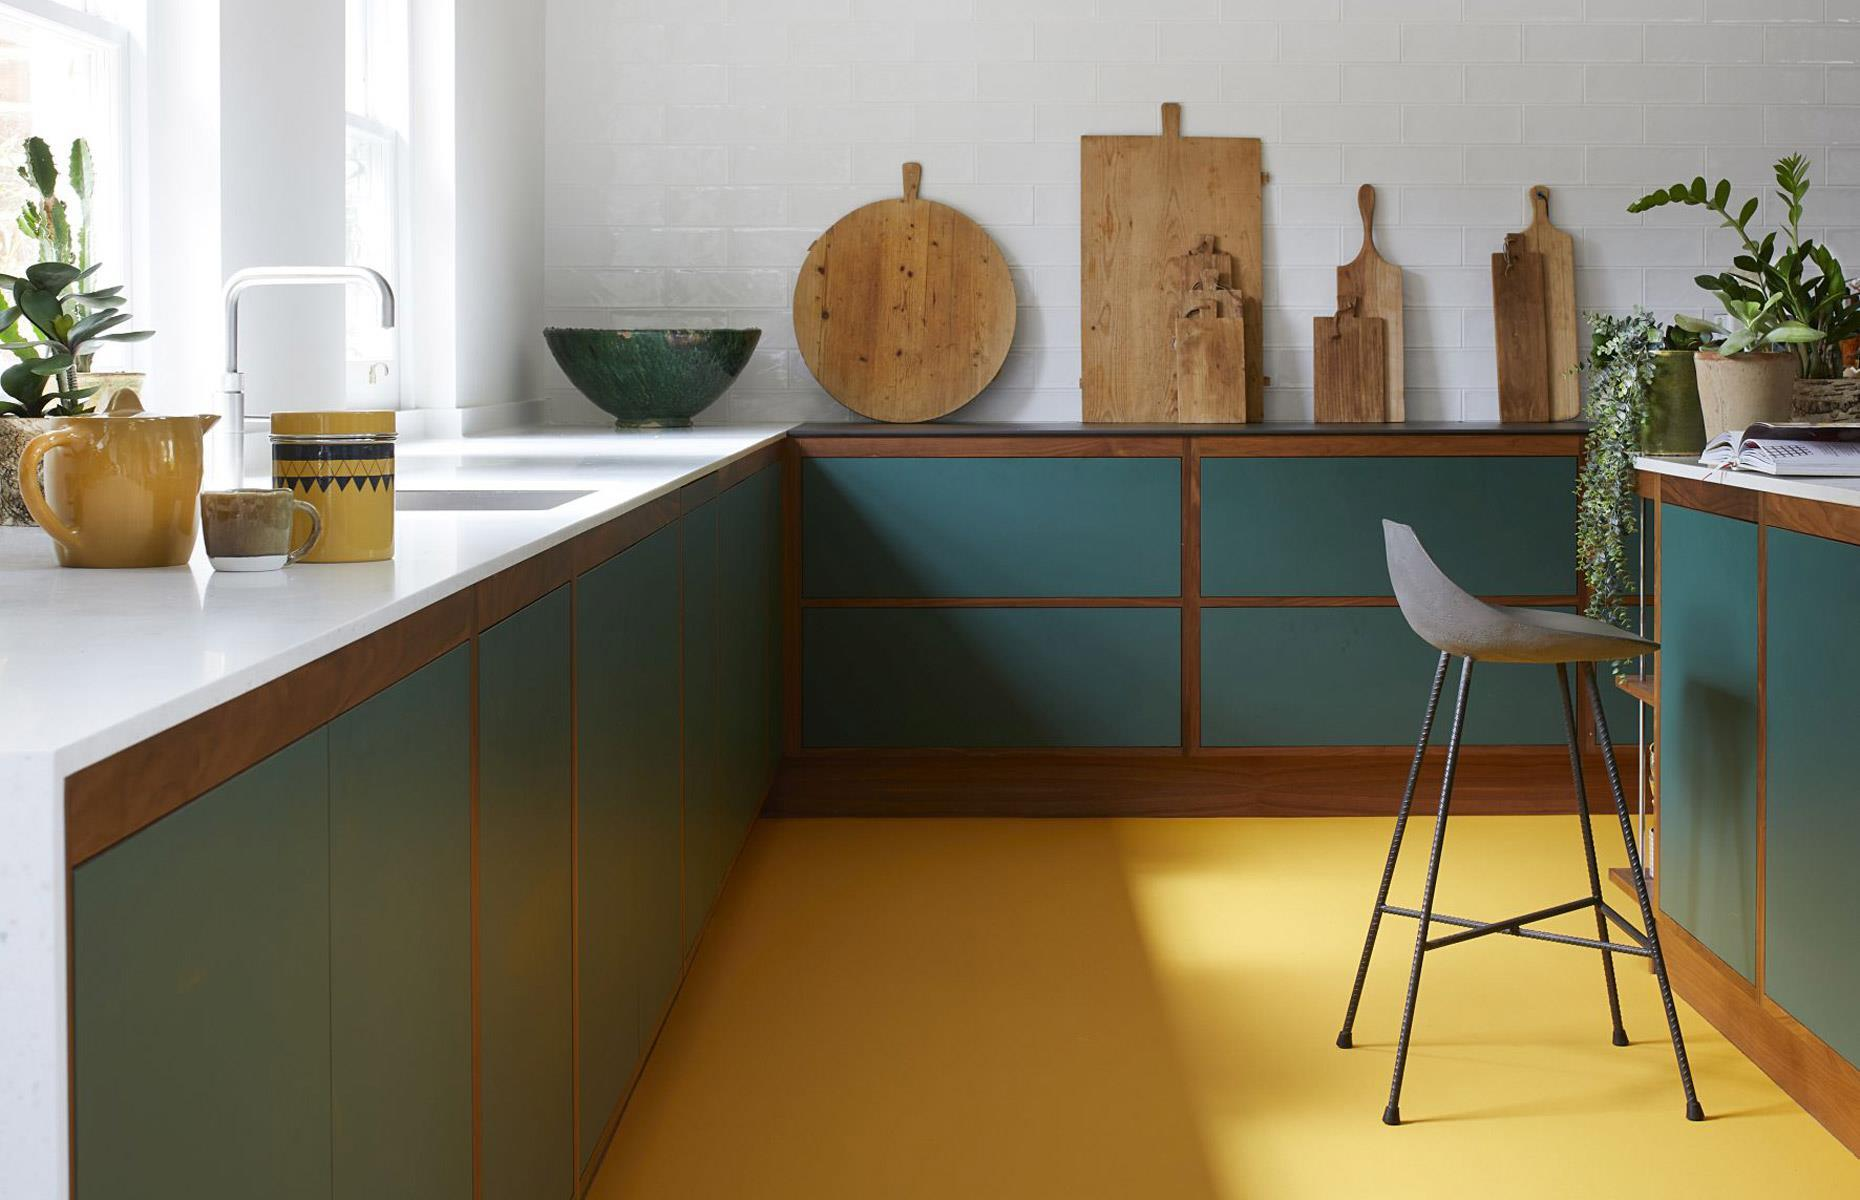 Cool kitchen flooring ideas that really make the room ...